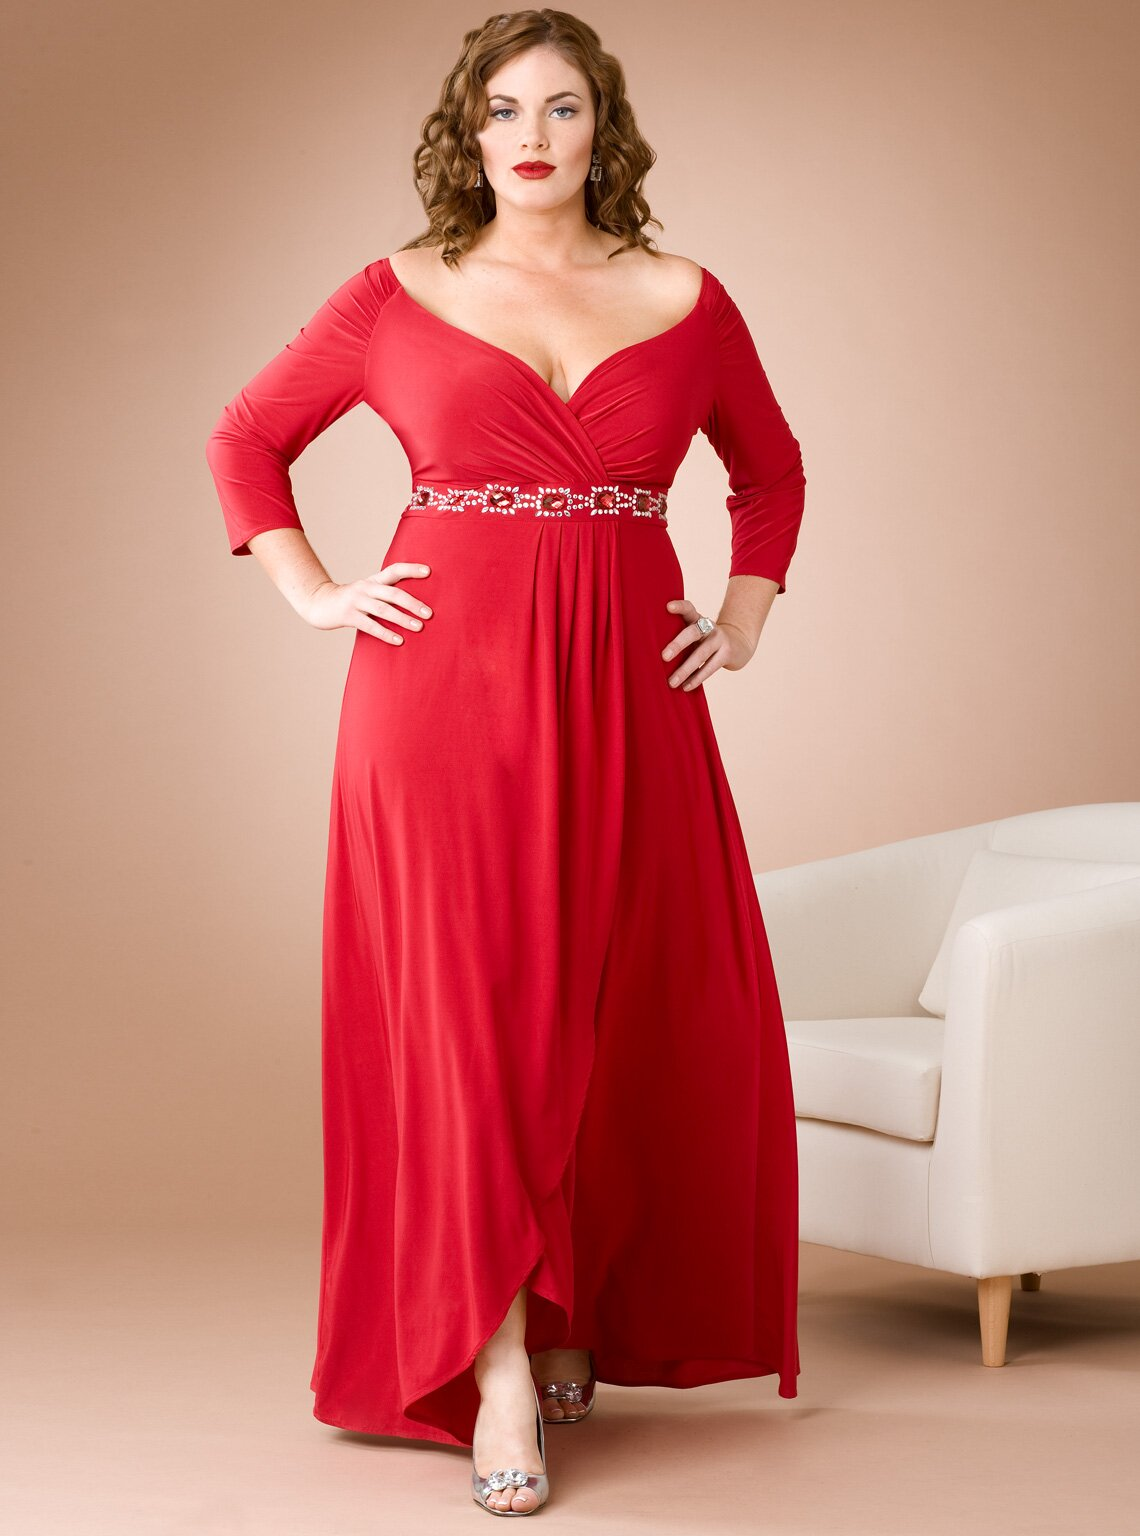 Wedding dresses plus sizes Photo - 6